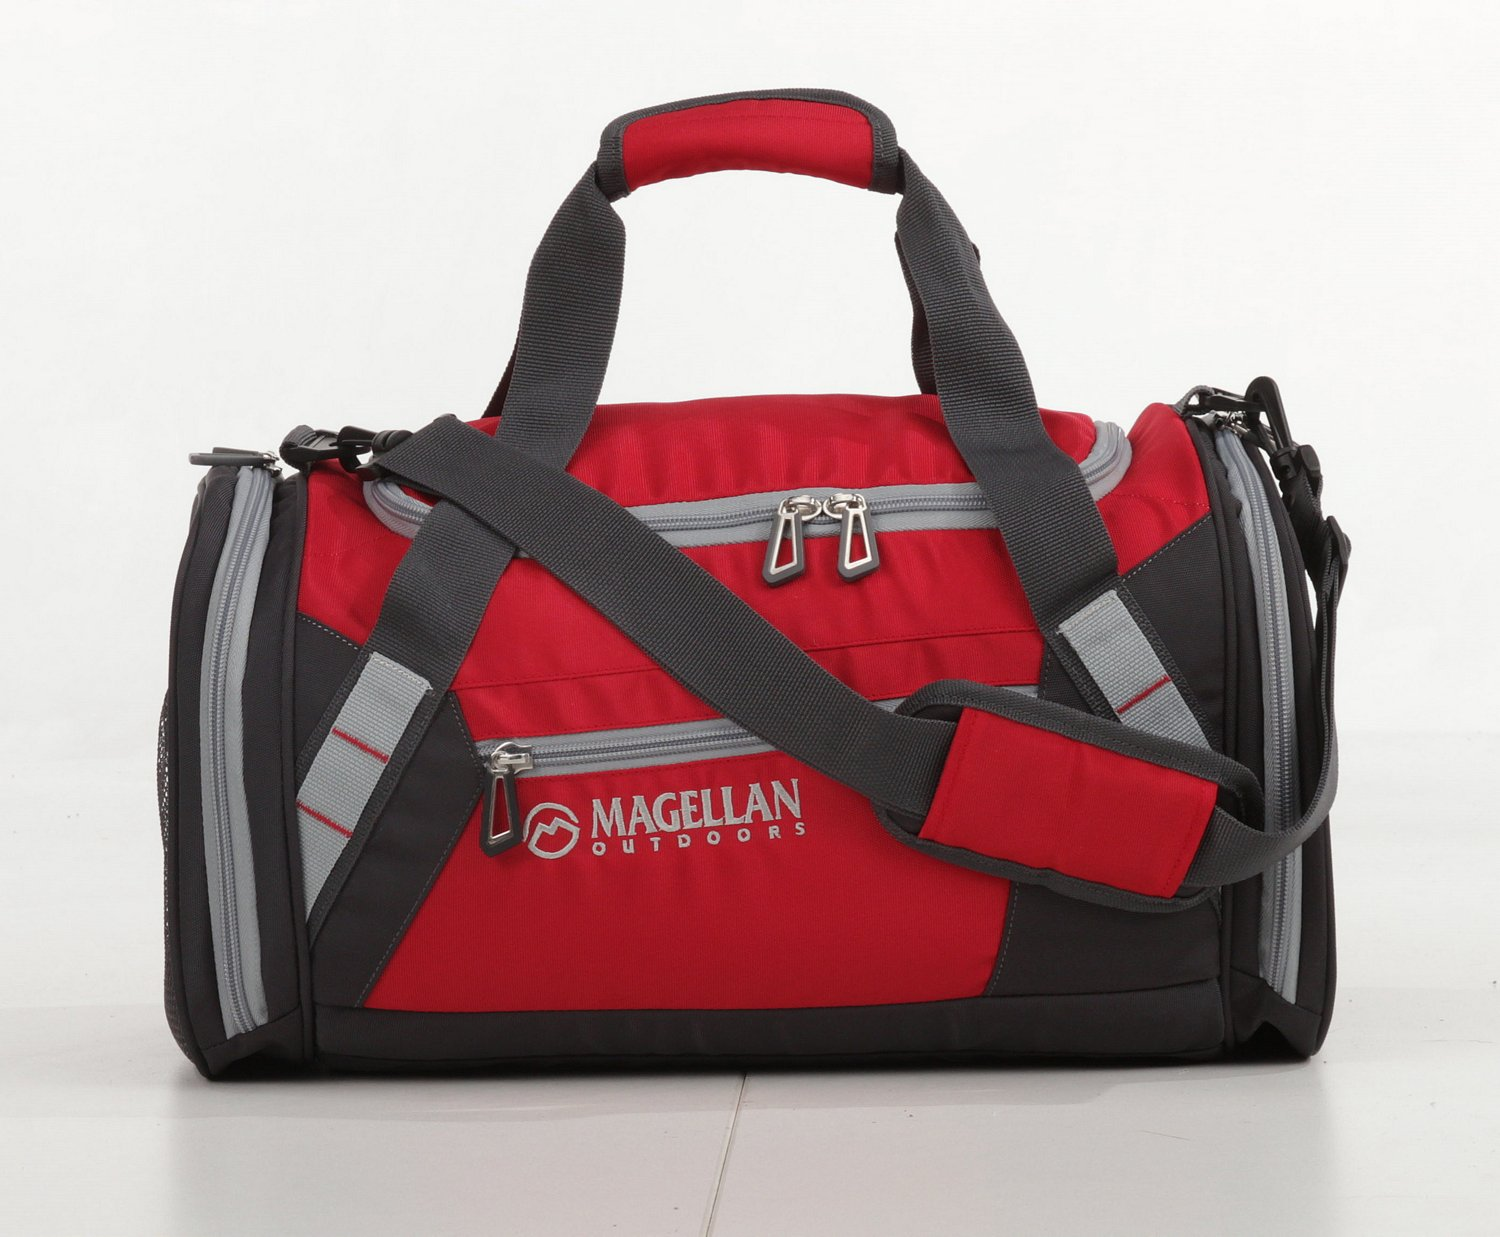 a59ad1d84 Display product reviews for Magellan Outdoors 18 in Duffel Bag